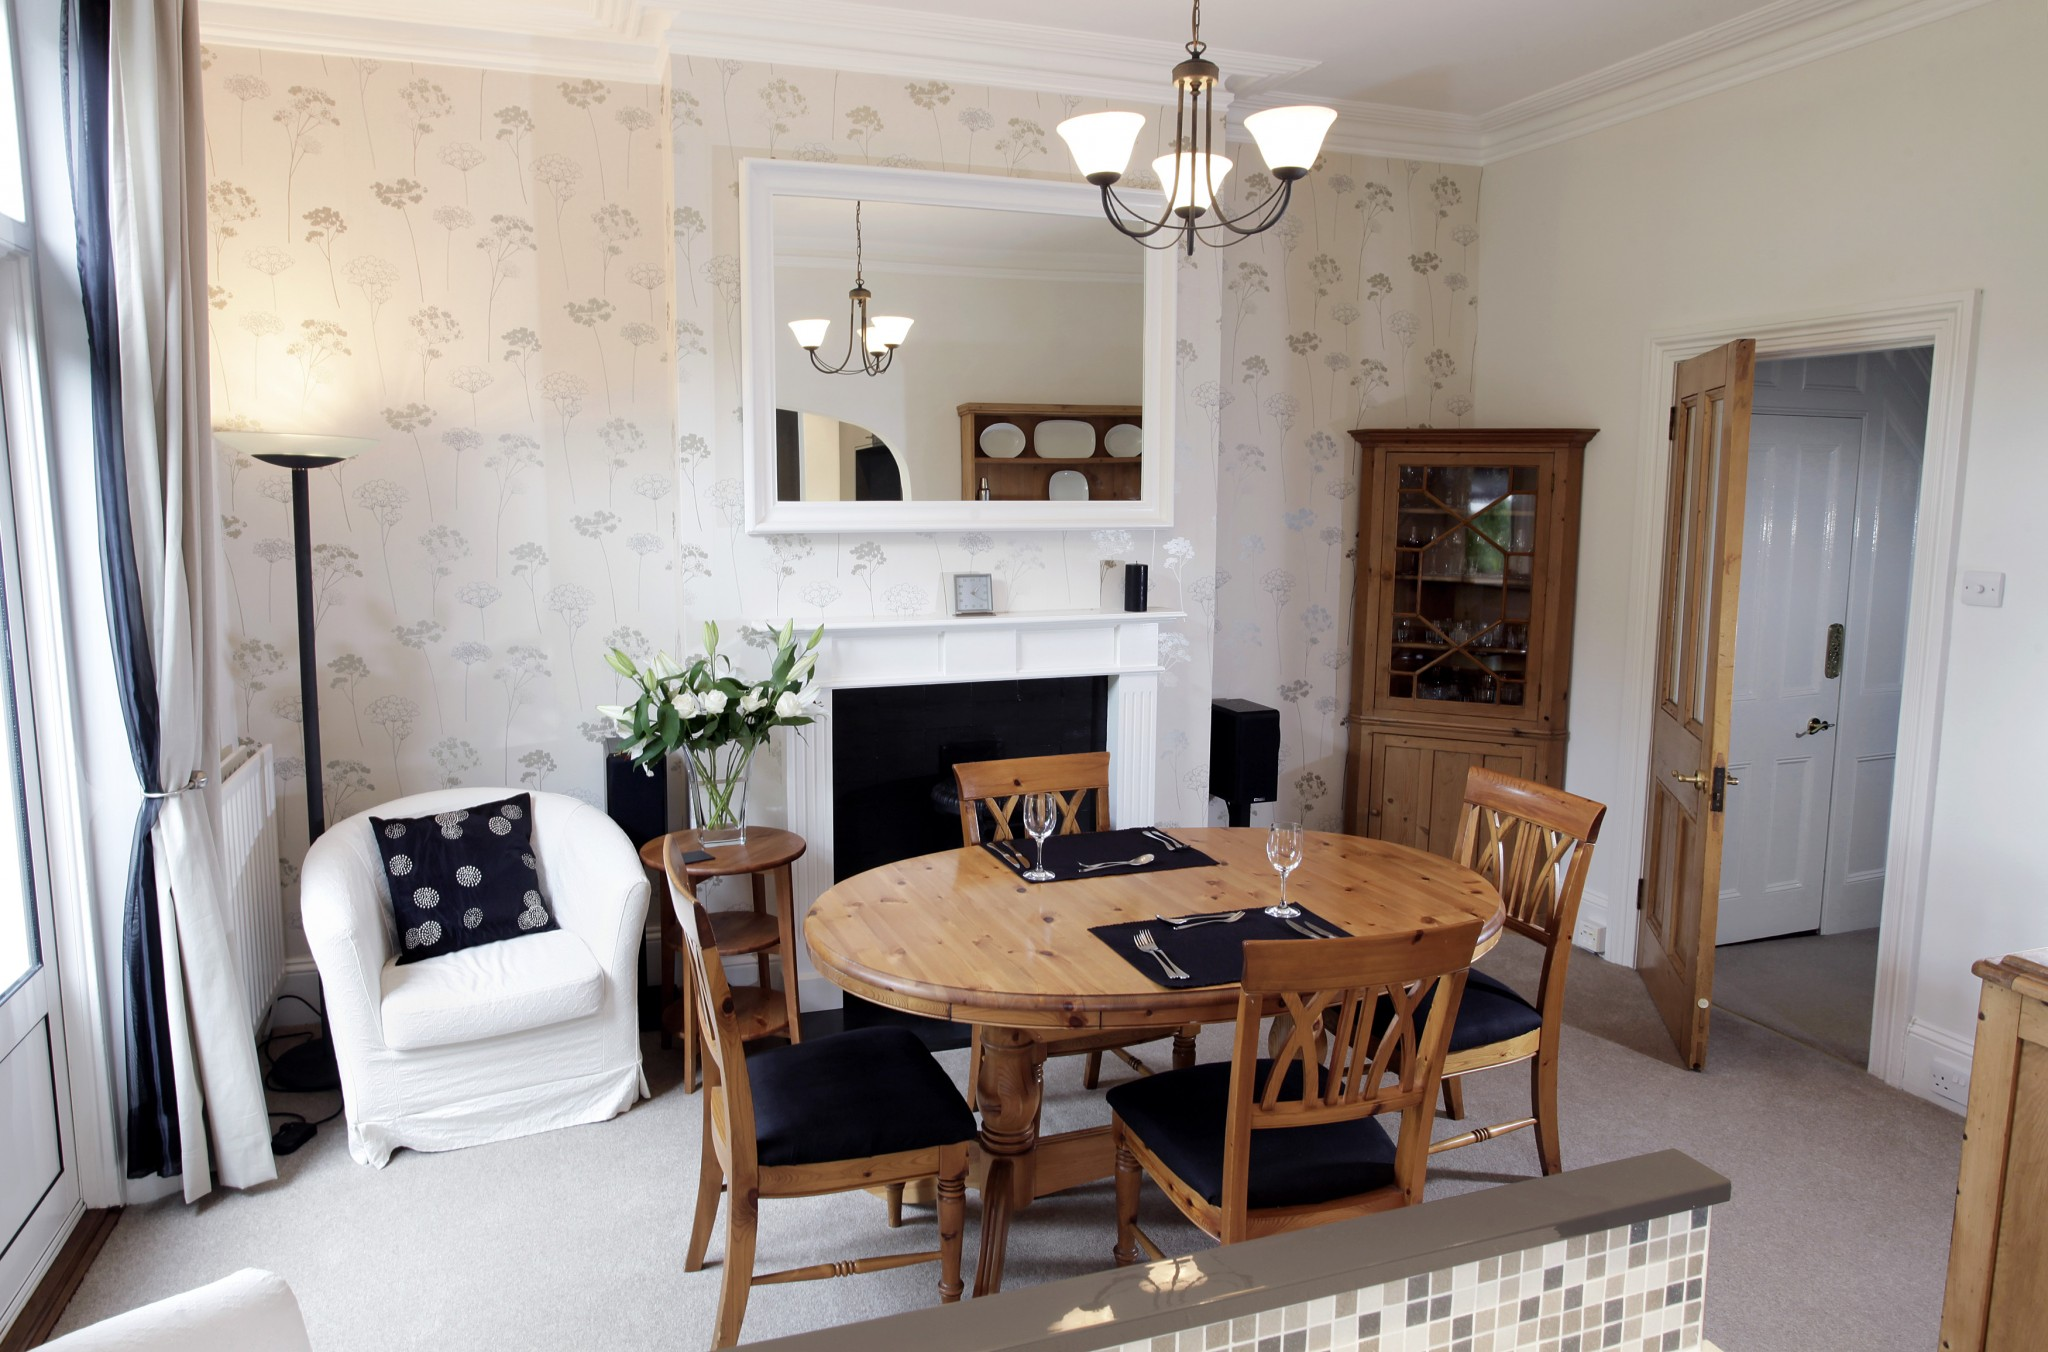 Cost Effective Interior Design How To Choose And Use An Interior Designer Balance Design Sw16